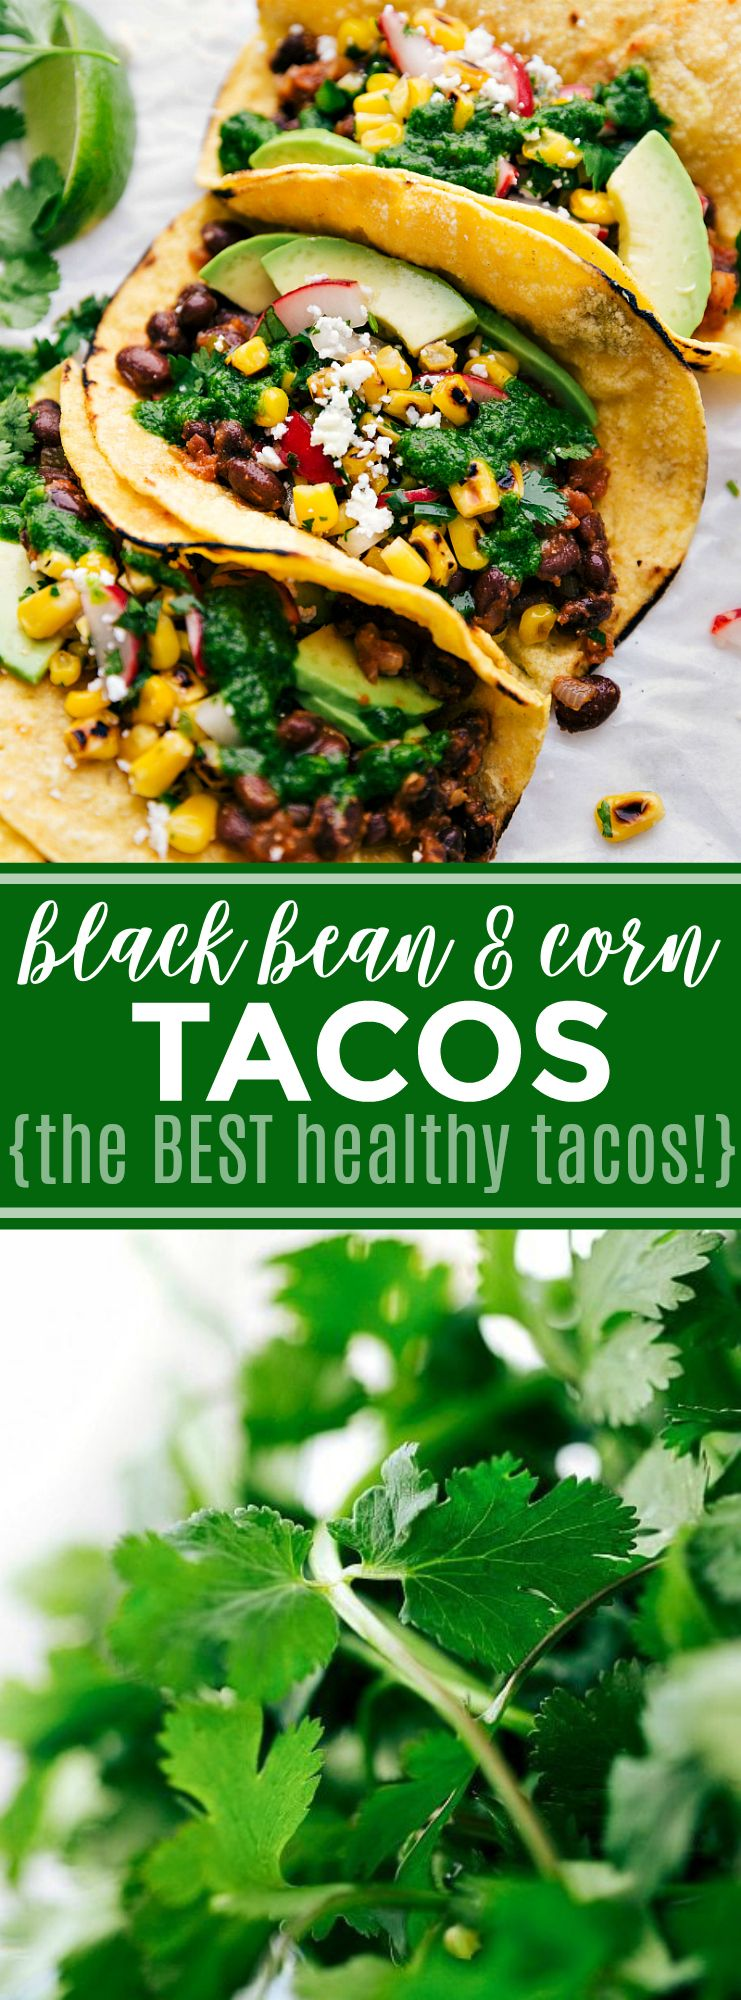 Healthy Tacos {Black Bean & Corn} | Chelsea's Messy Apron